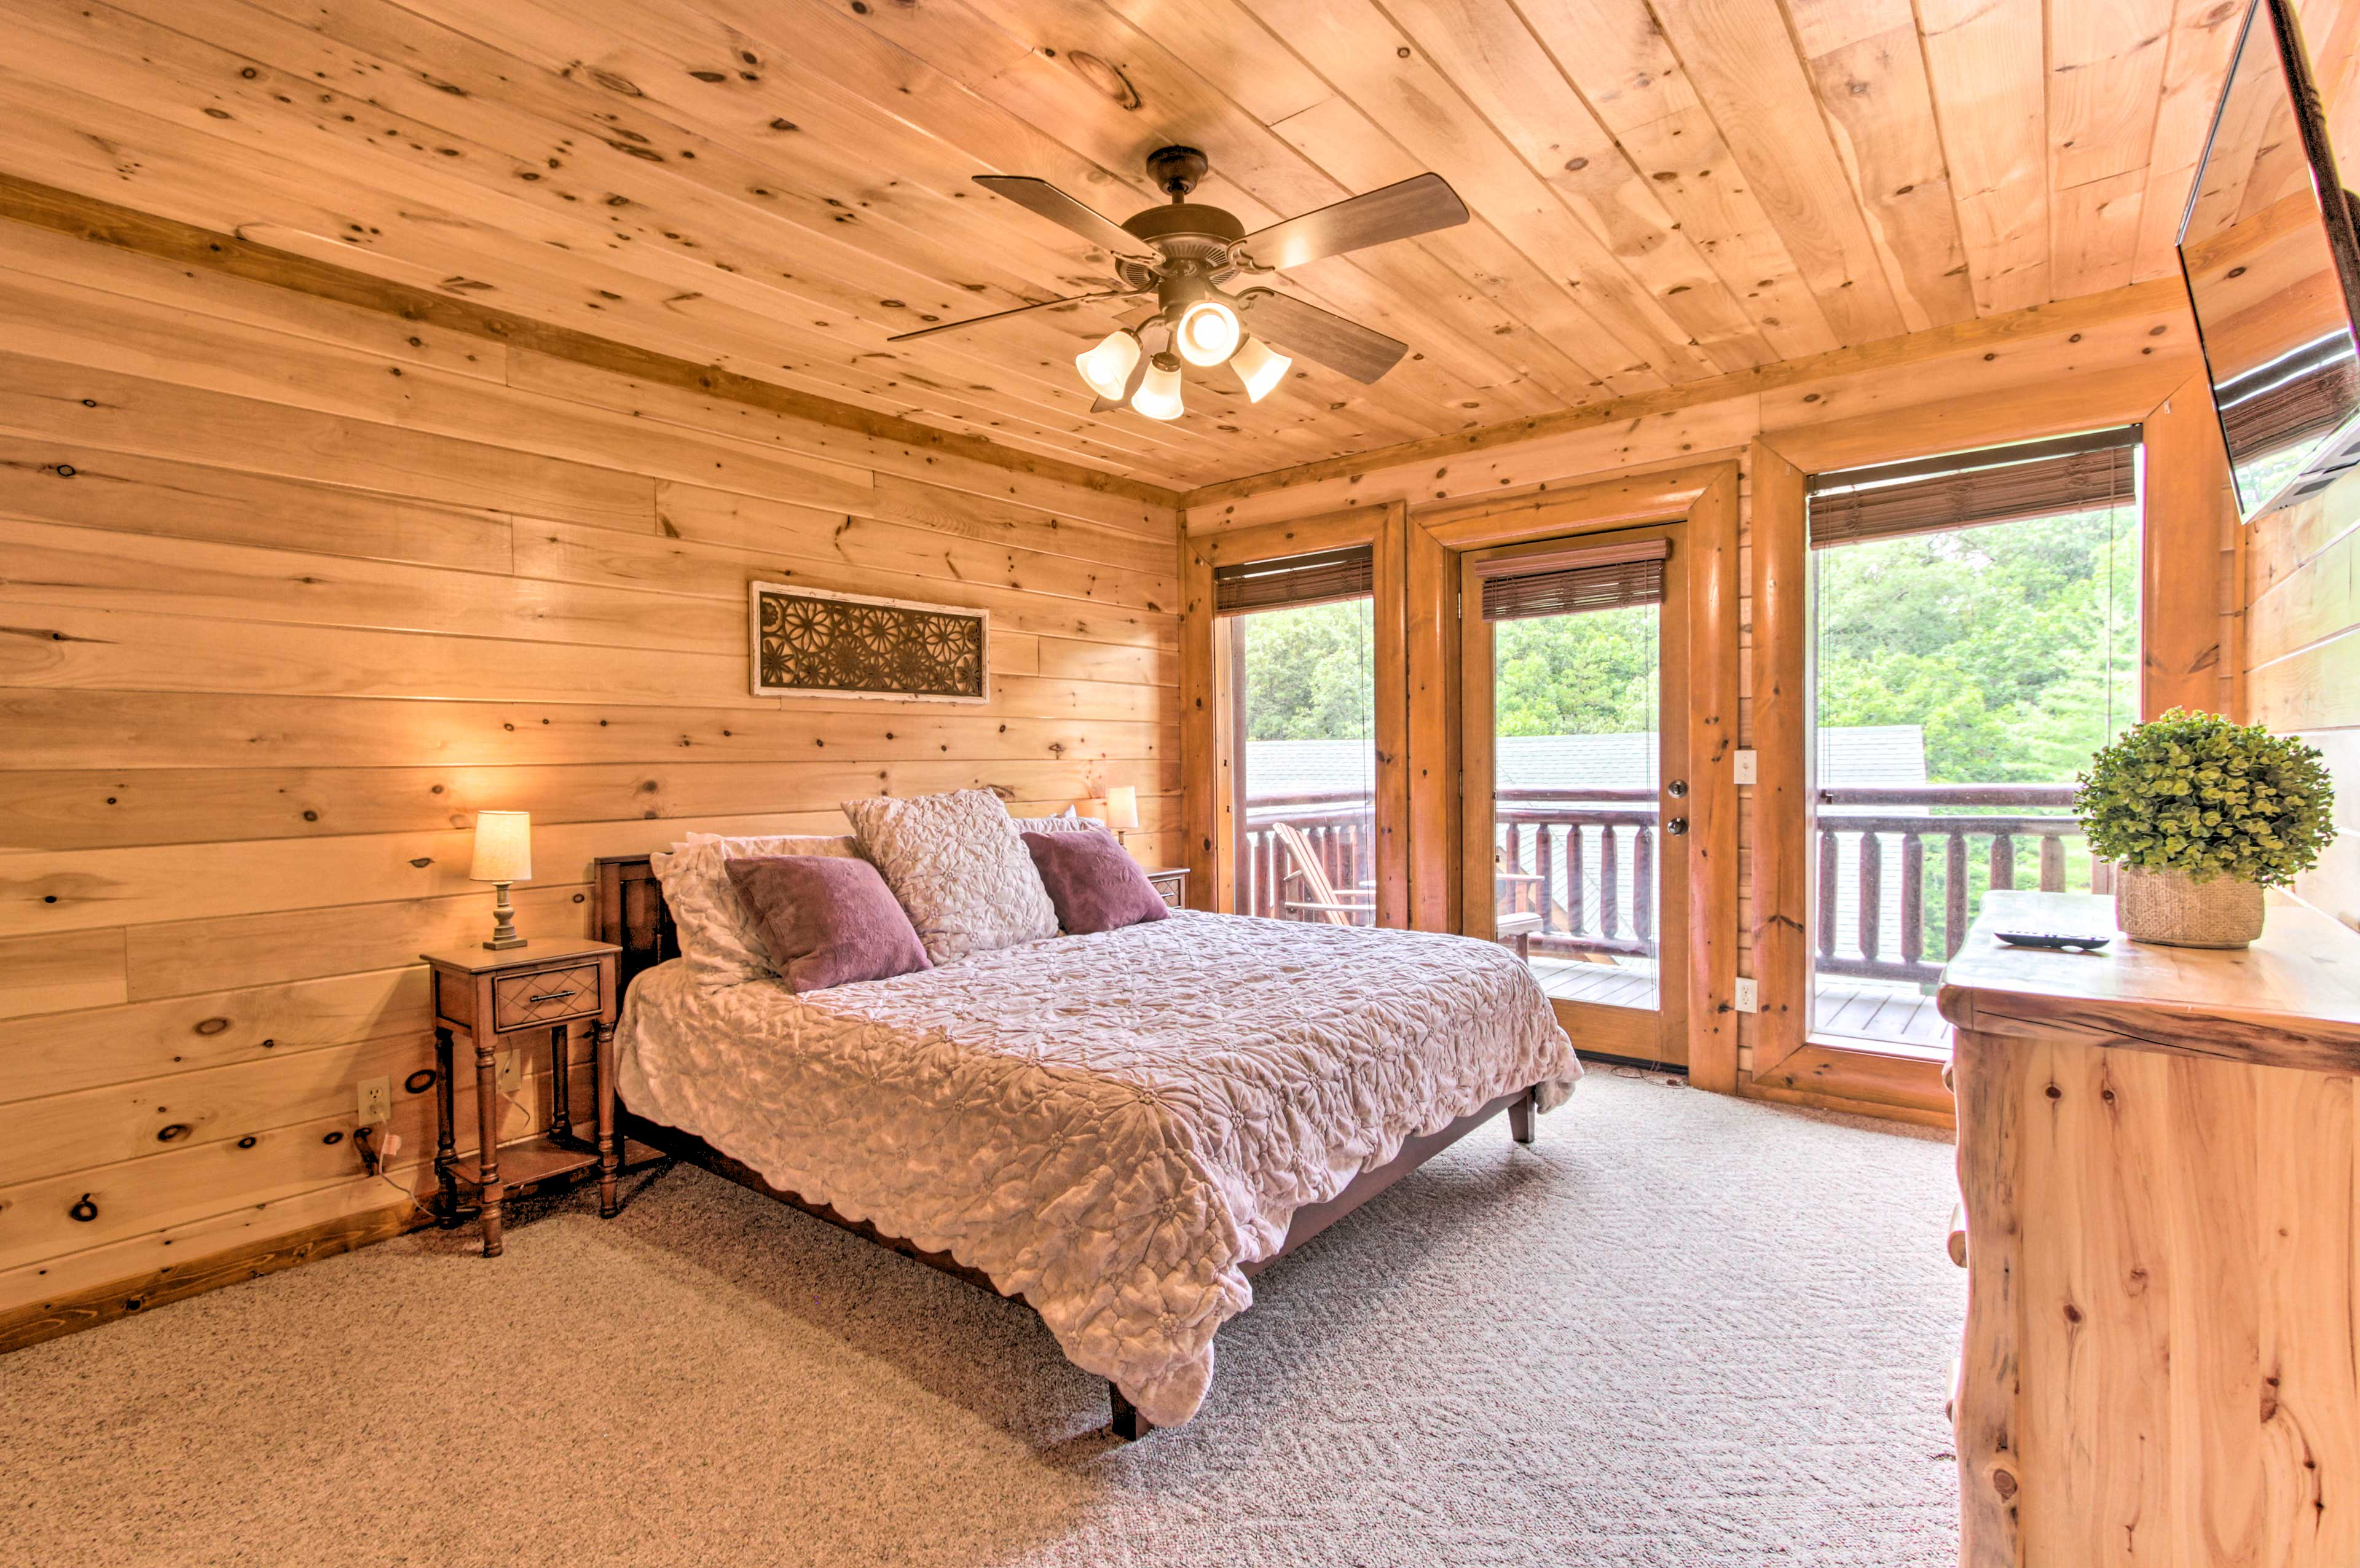 Get situated in bedroom 7 with the king-sized bed!